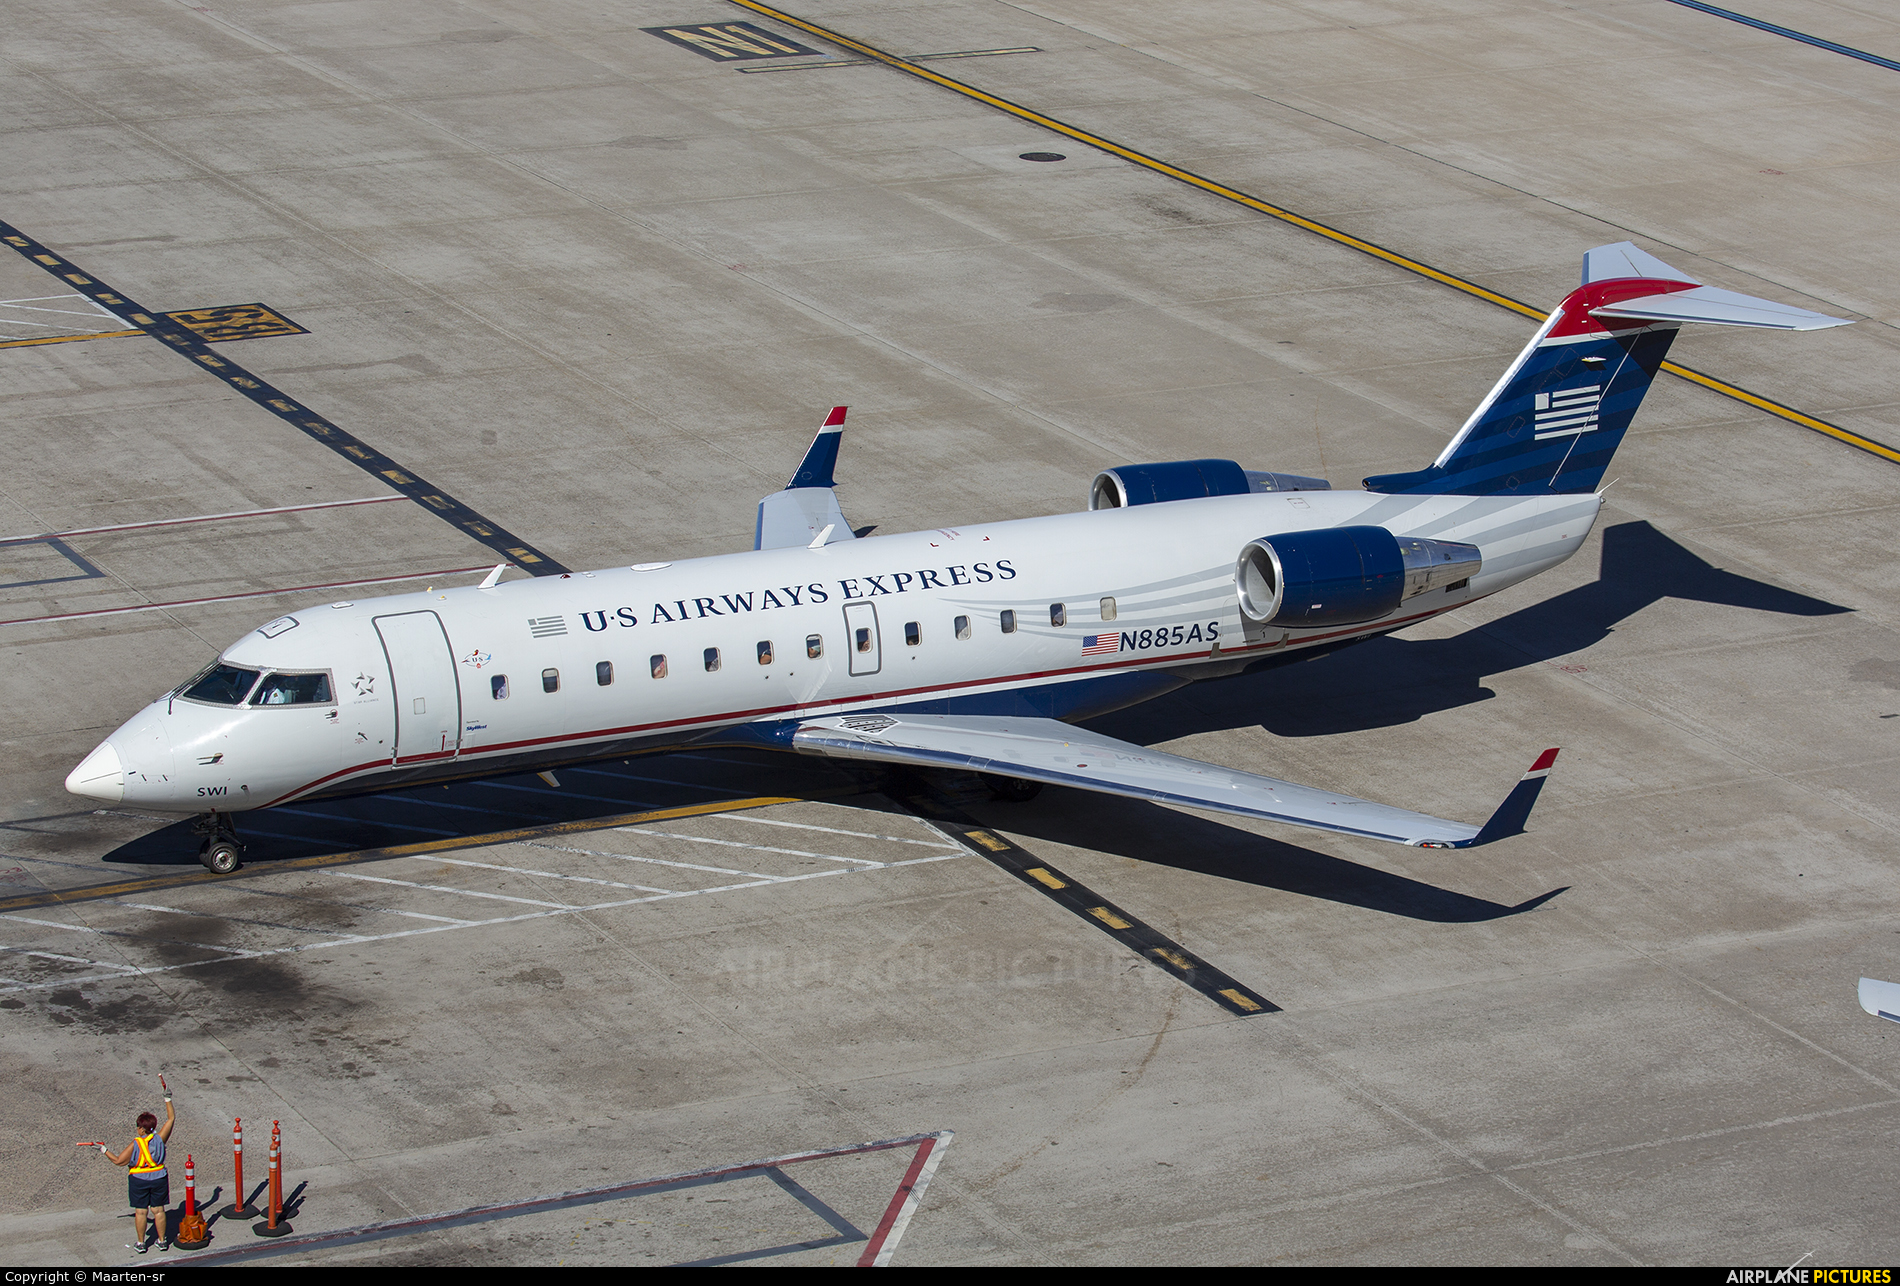 US Airways Express N885AS aircraft at Phoenix - Sky Harbor Intl